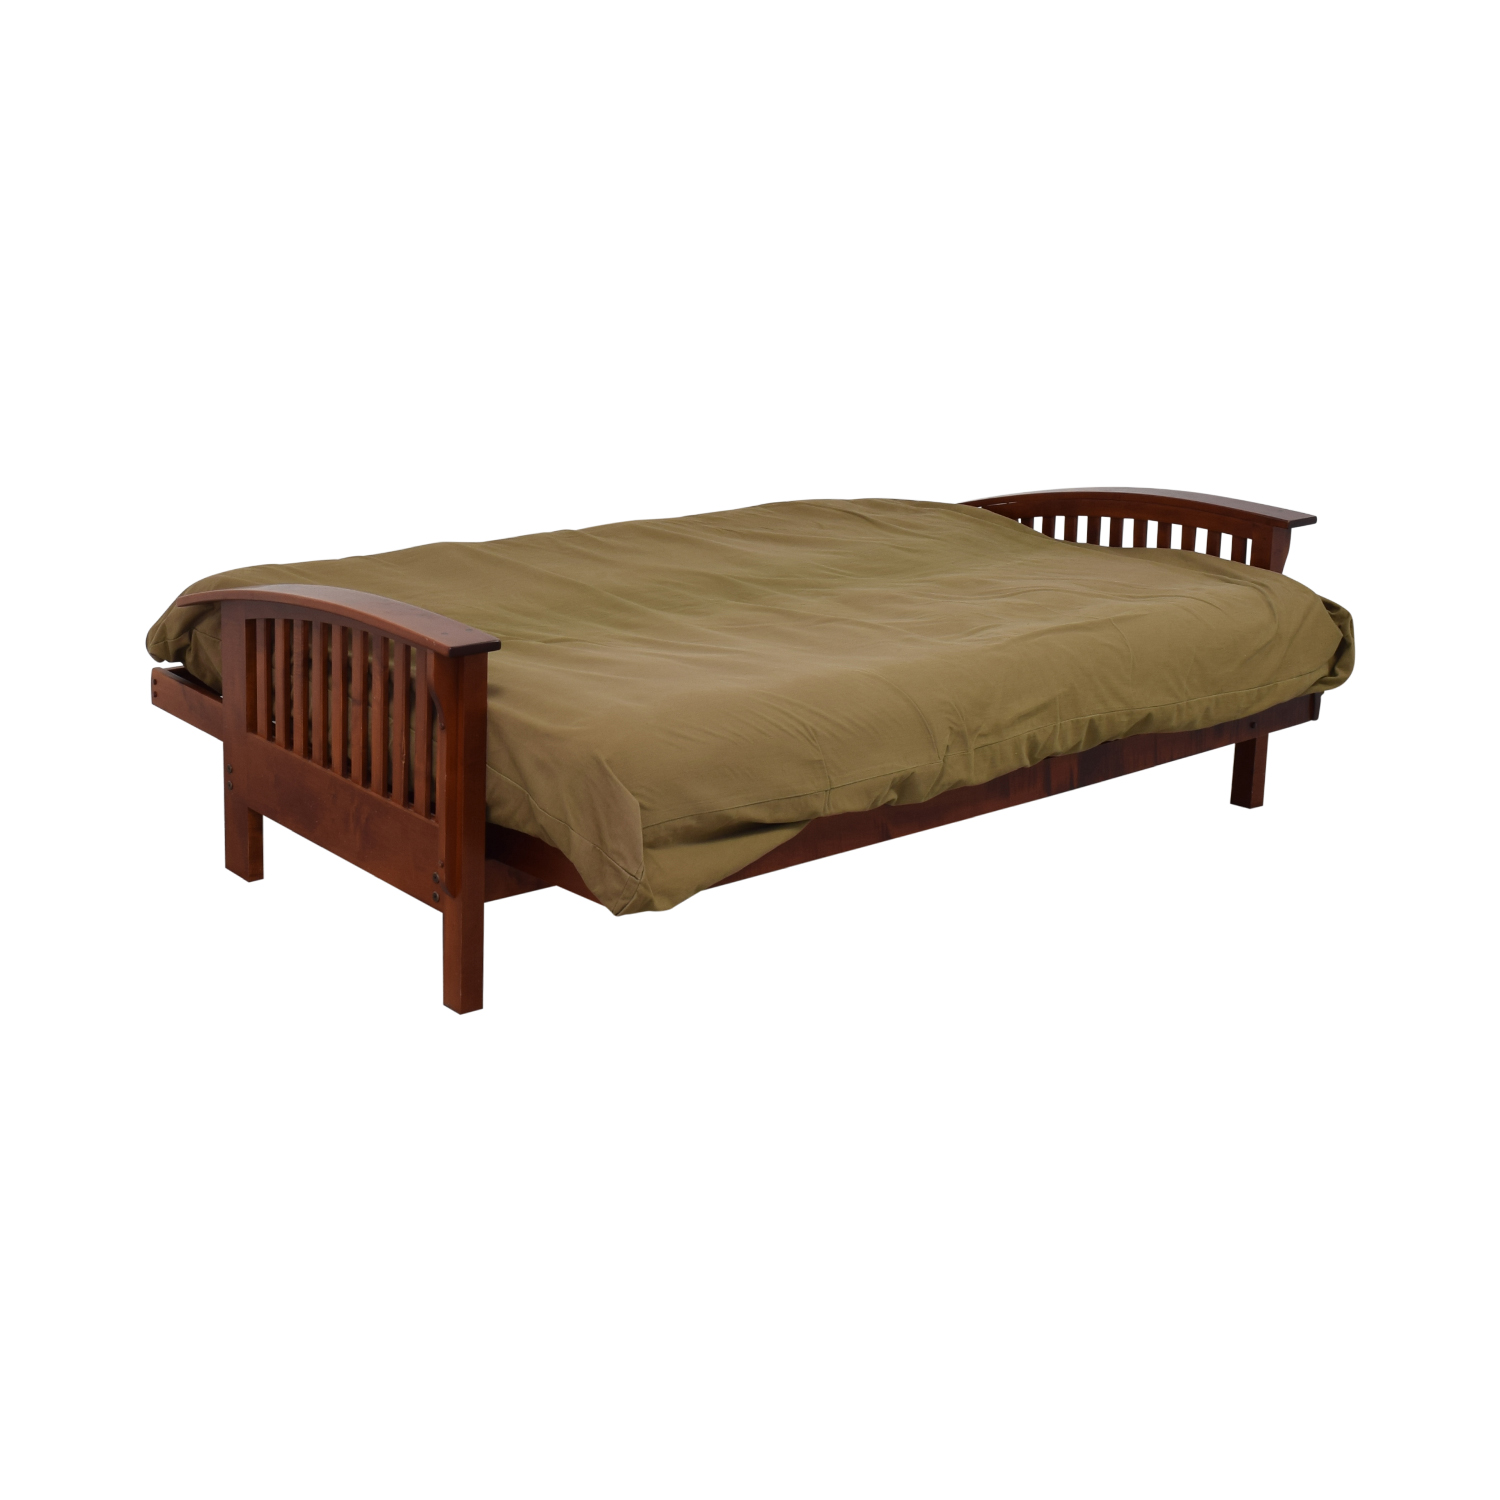 Wood Frame Futon on sale